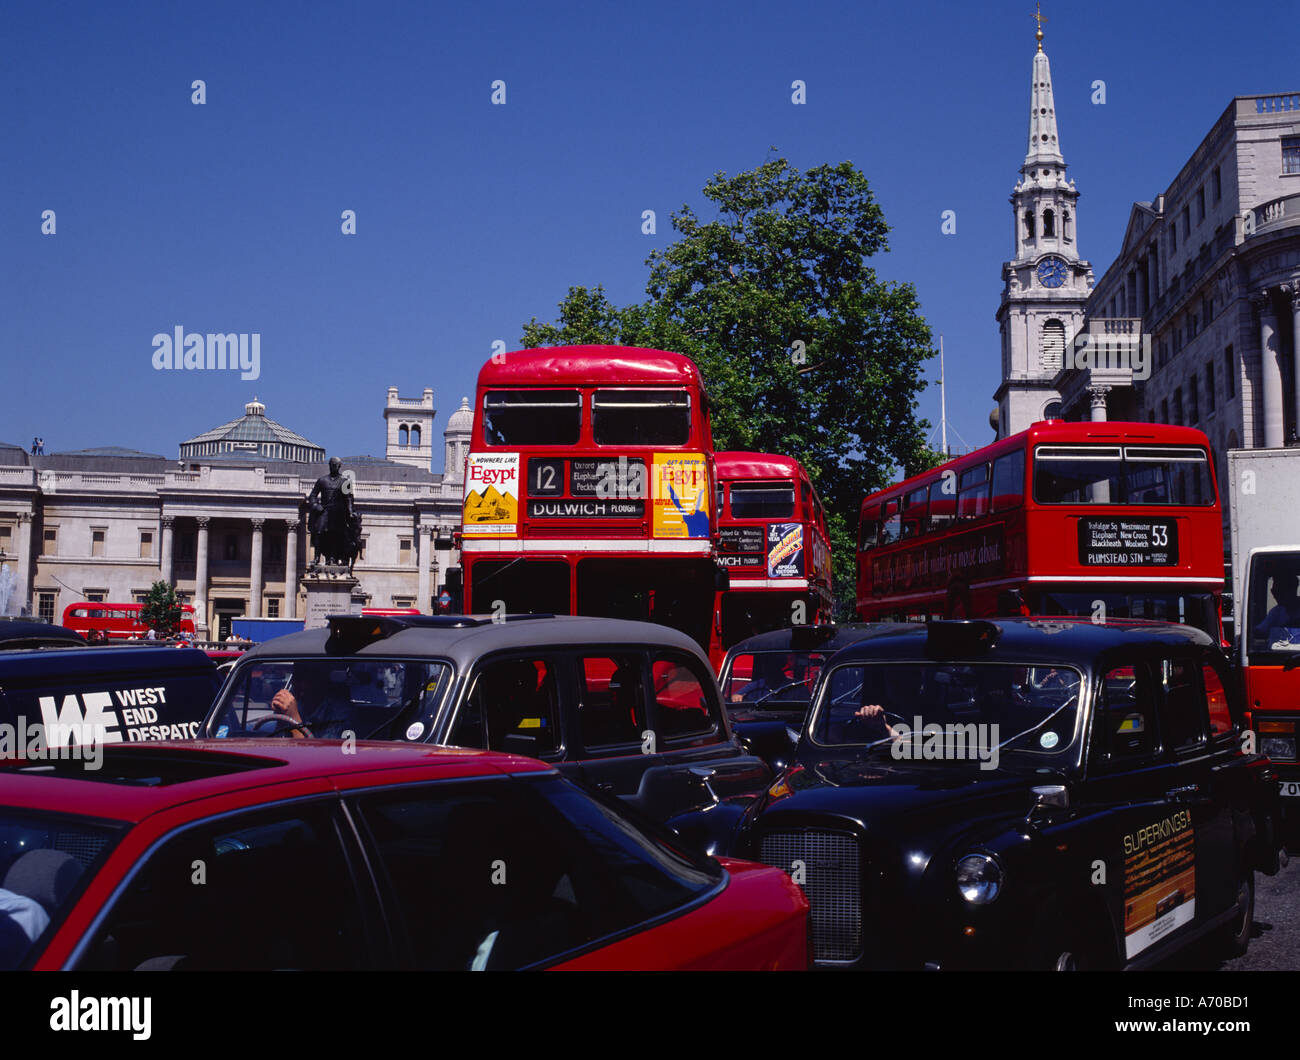 London Traffic Trafalgar Square London England - Stock Image